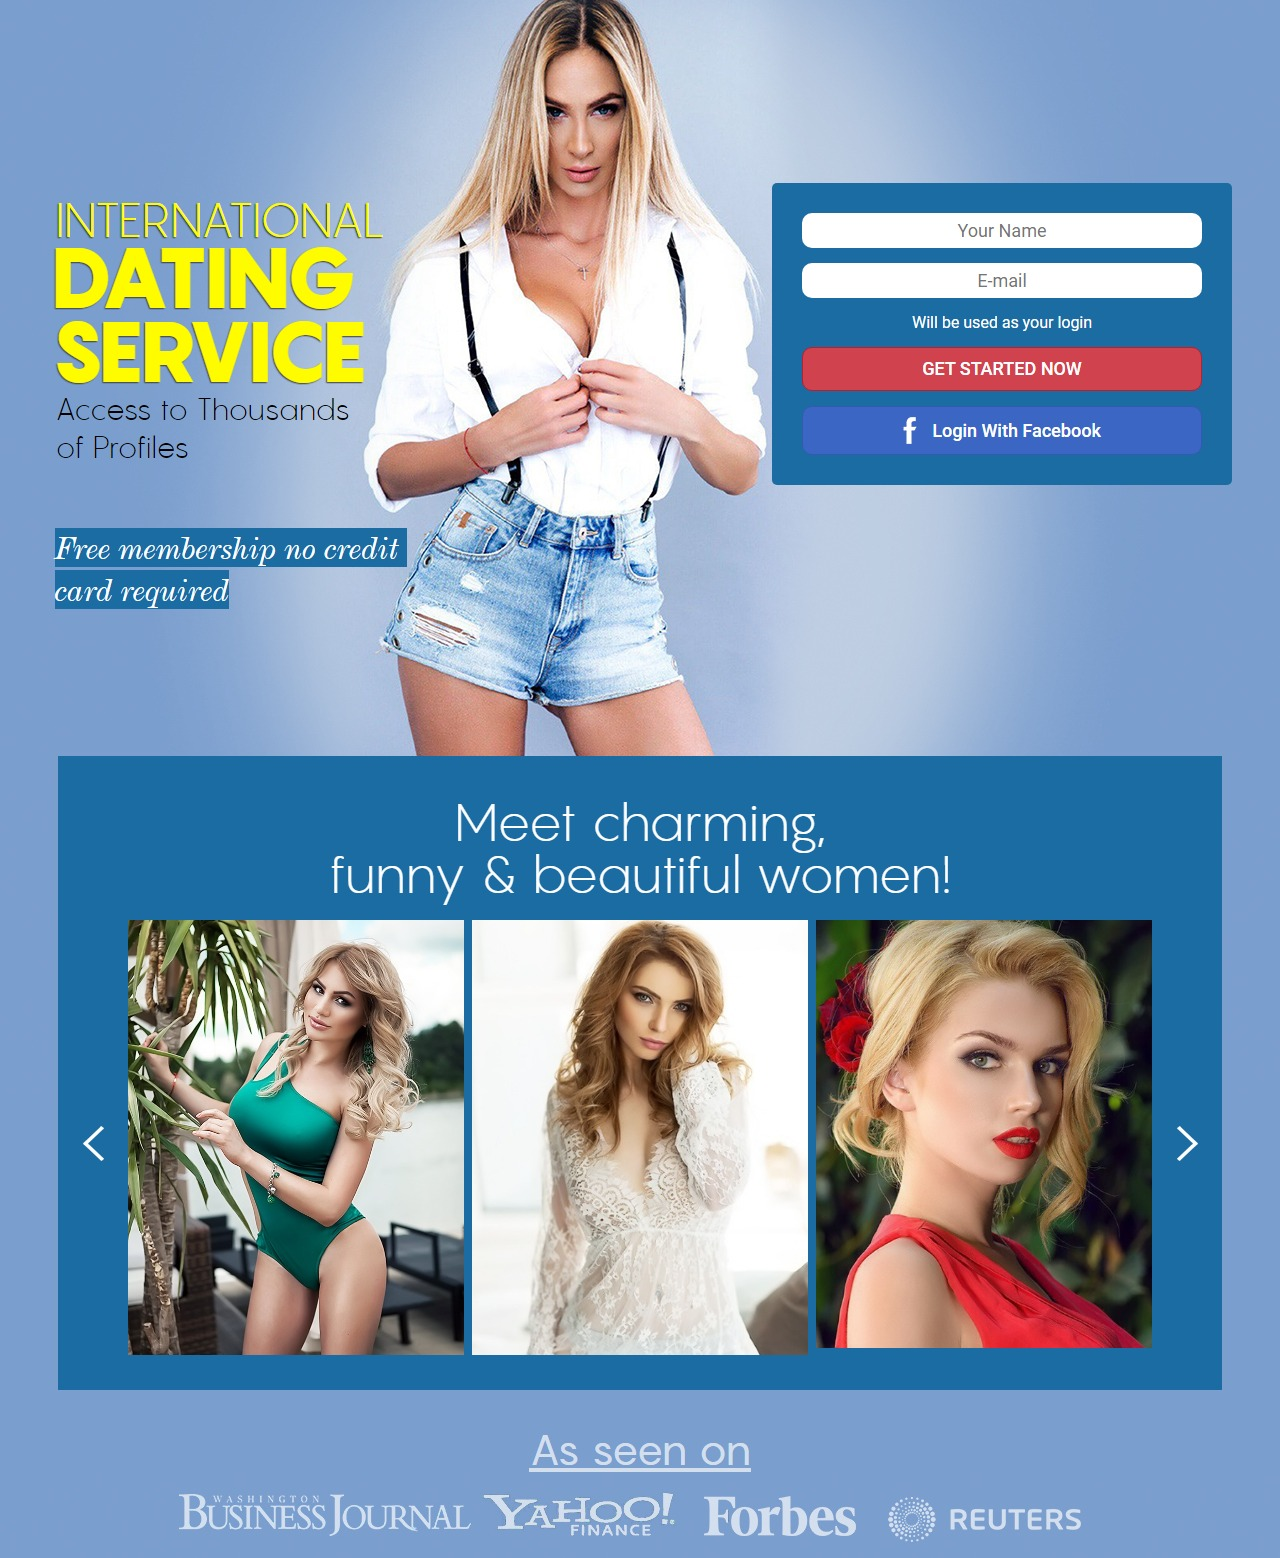 BeHappy is a worldwide known, trustworthy and reliable Dating and Marriage